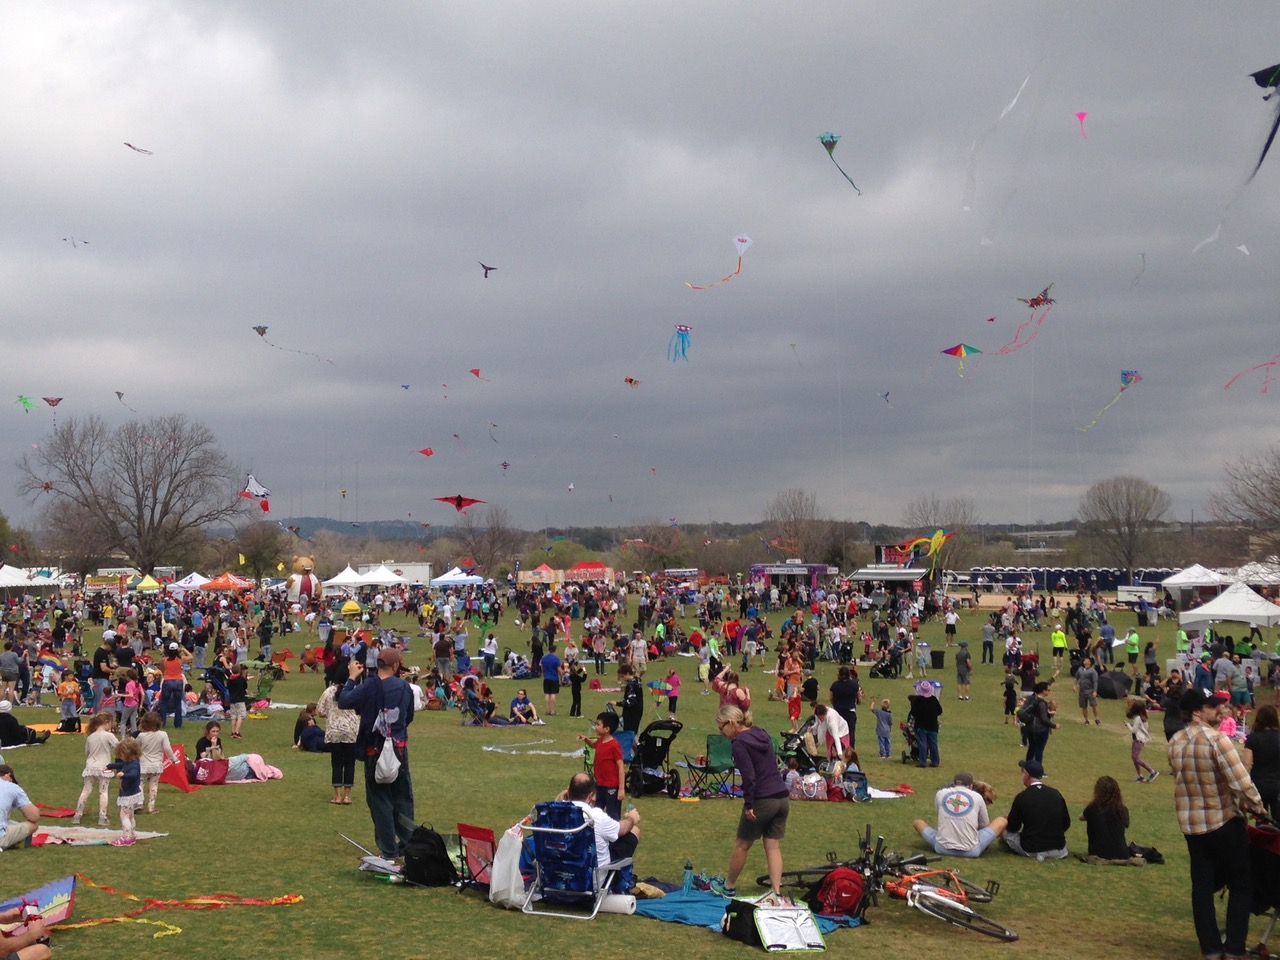 Austin threw me a great birthday party last year.  Each year, on the first Sunday of March Austin's Zilker Park is the site of a huge kite festival.  In 2016, it just happen to take place on my birthday.  Link: Austin Kite Festival: Cheap, Colourful, Chaotic & Crazy!